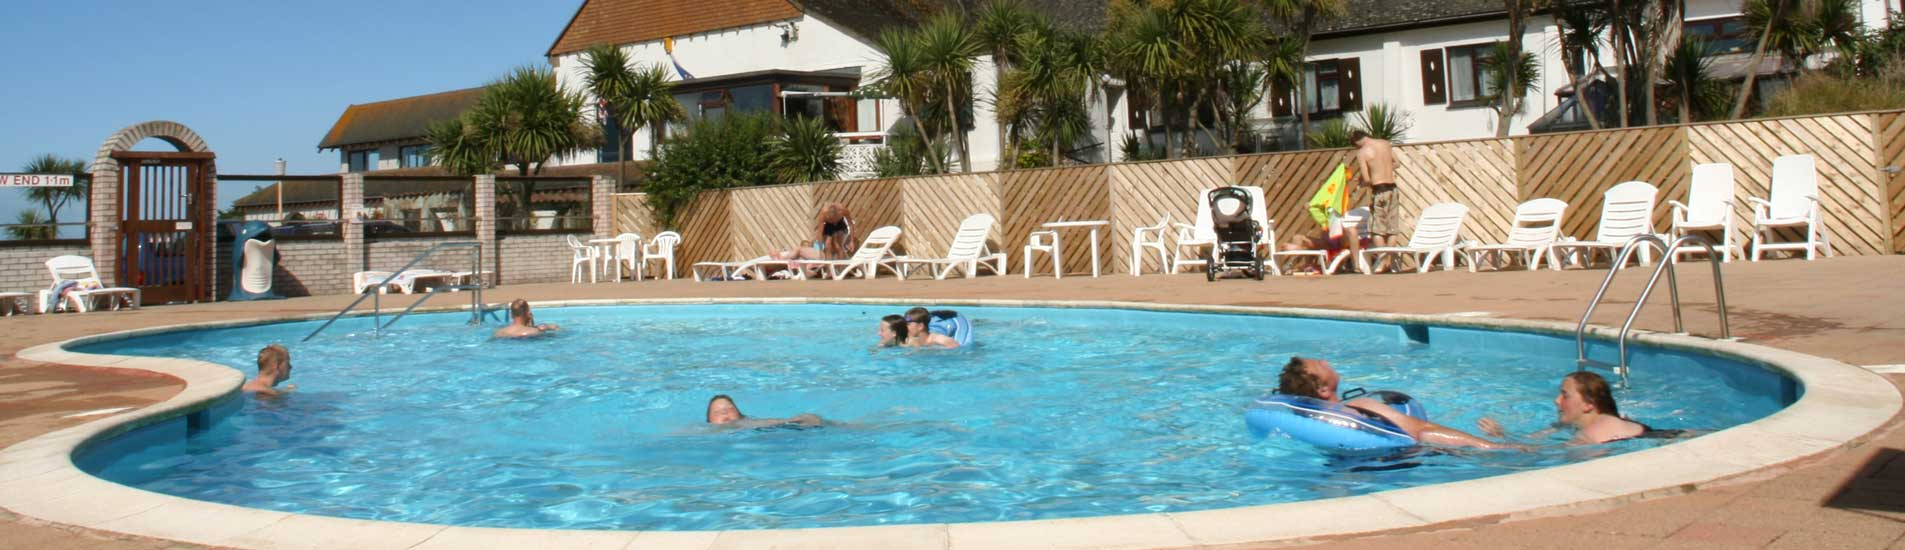 Family Holiday Park In St Ives Bay Cornwall